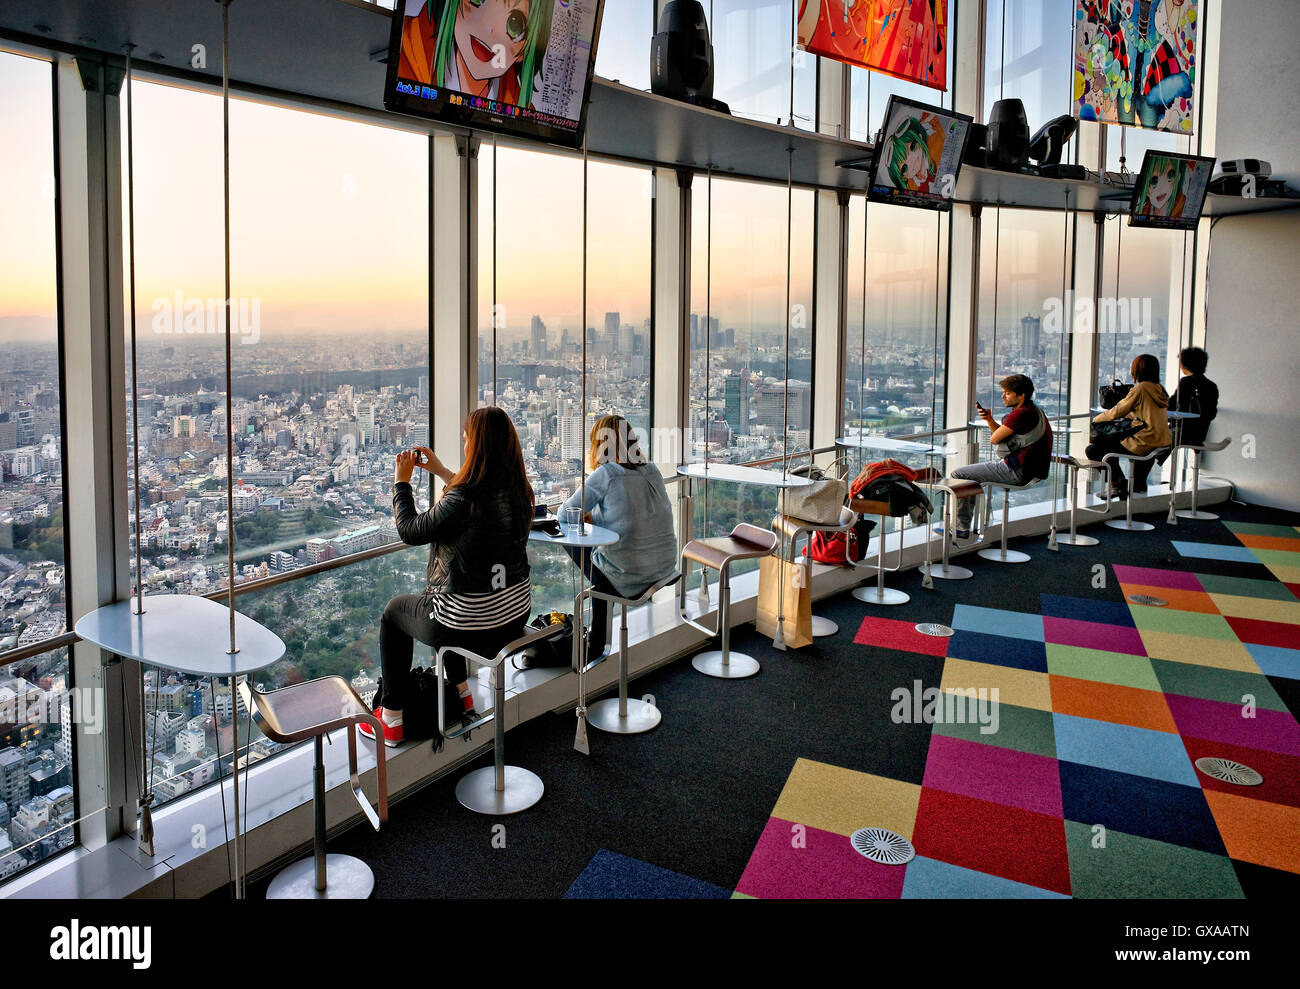 Japan, Honshu island, Kanto, Tokyo, sunset overview from a lounge bar. - Stock Image